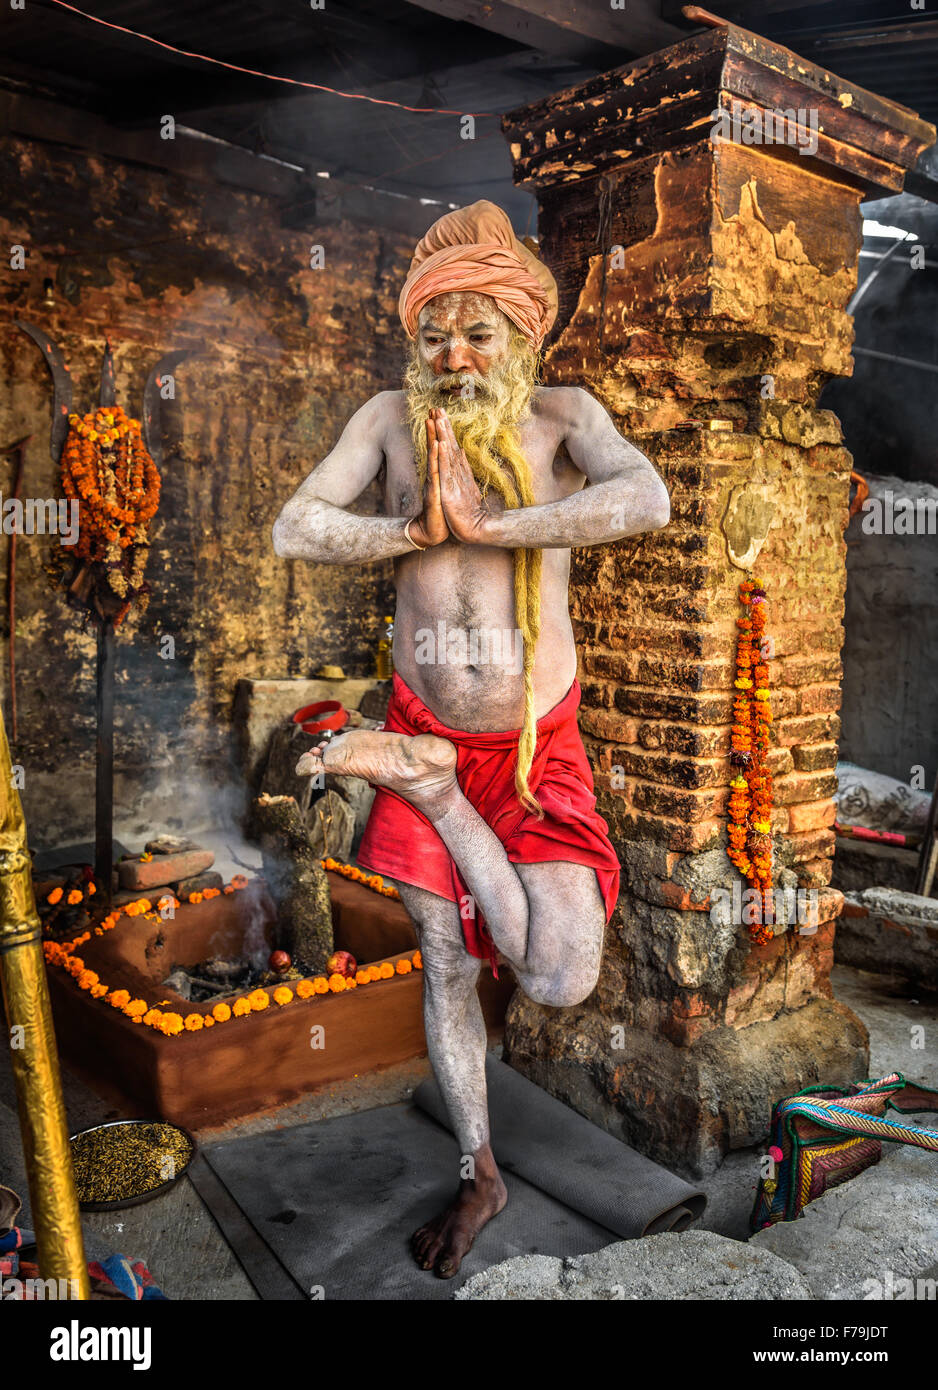 Shaiva sadhu (holy man) with traditional long beard exercises in Pashupatinath Temple - Stock Image